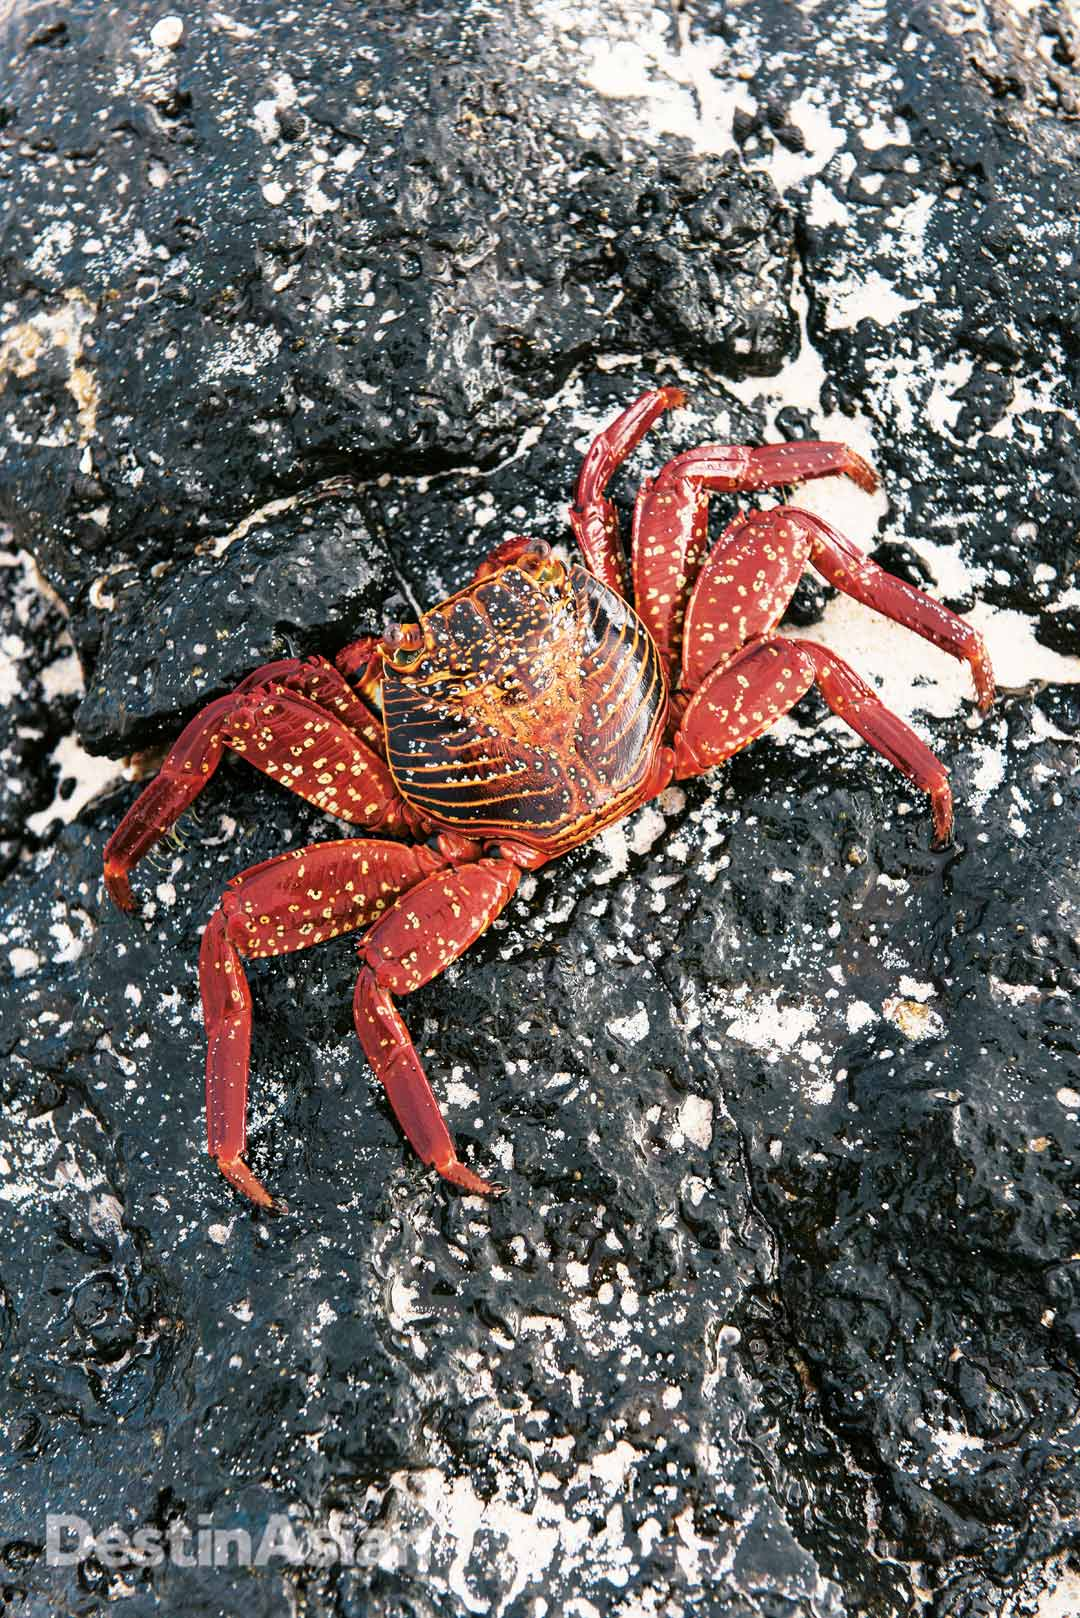 A Sally Lightfoot crab clinging to lava rock on the shores of San Cristóbal.